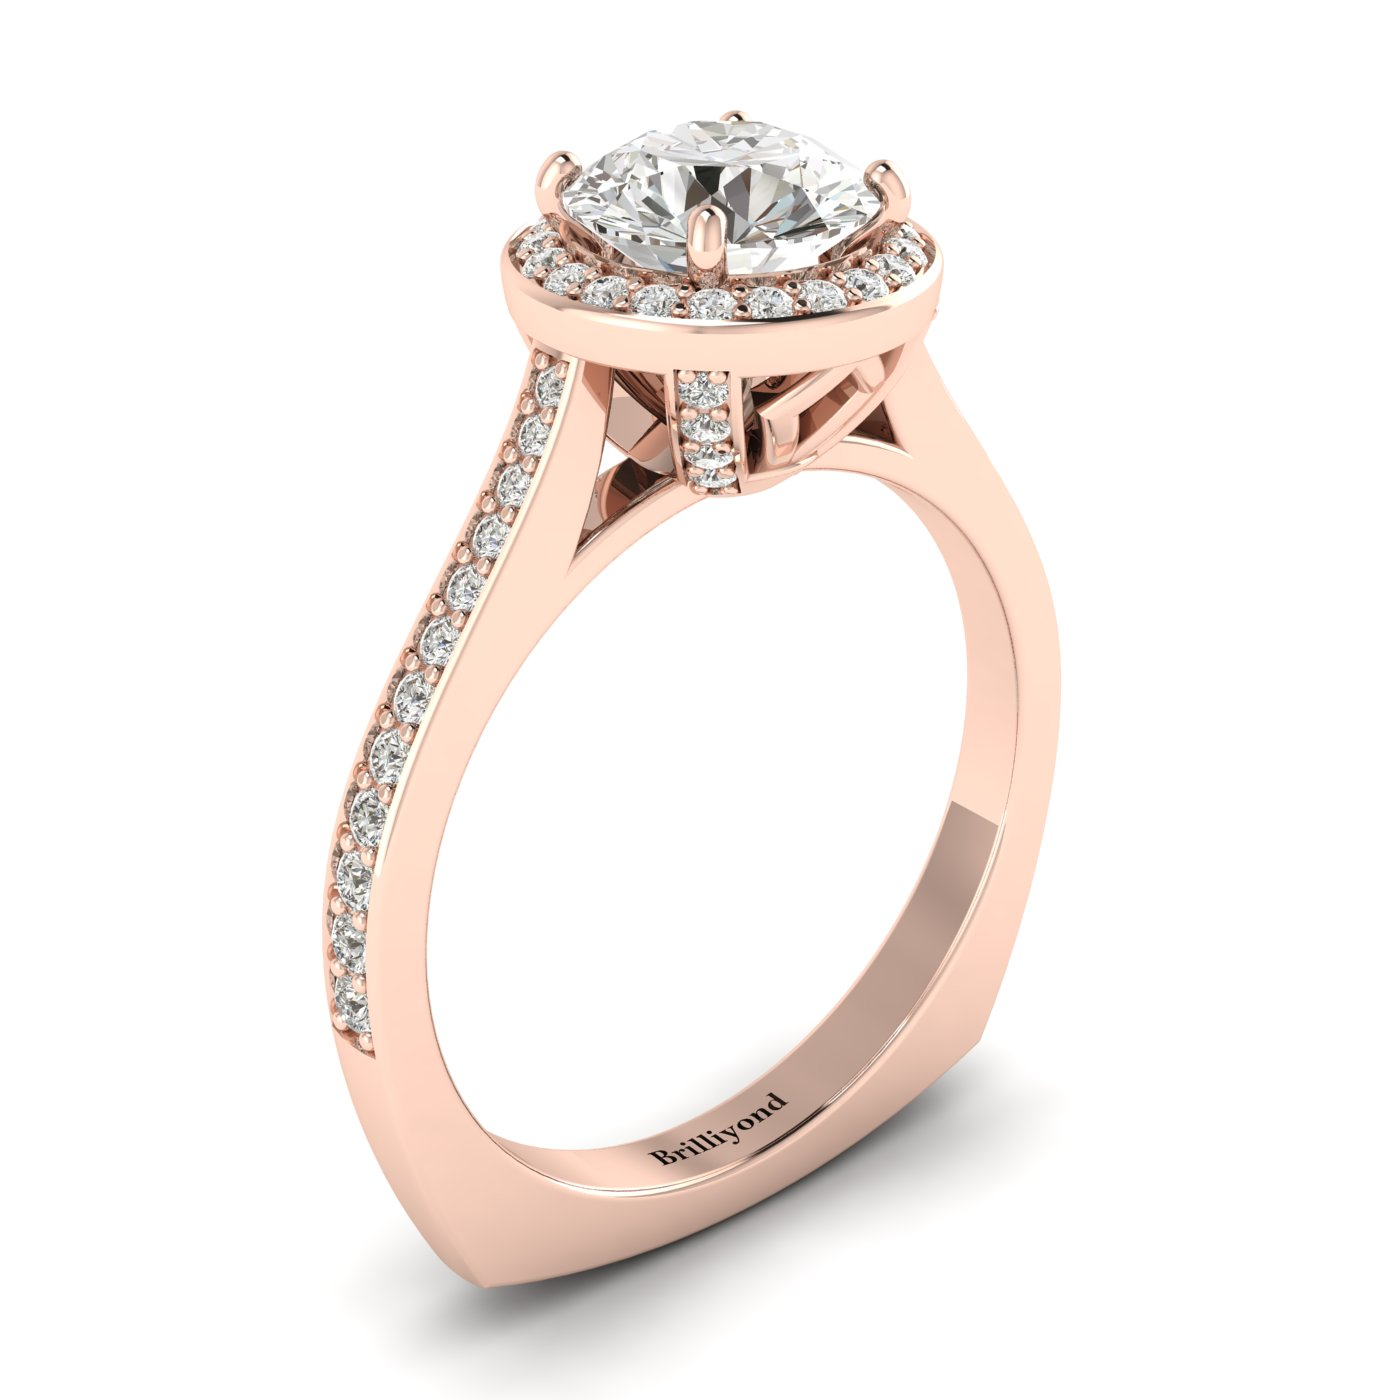 White Sapphire Rose Gold Halo Engagement Ring Edelweiss_image2